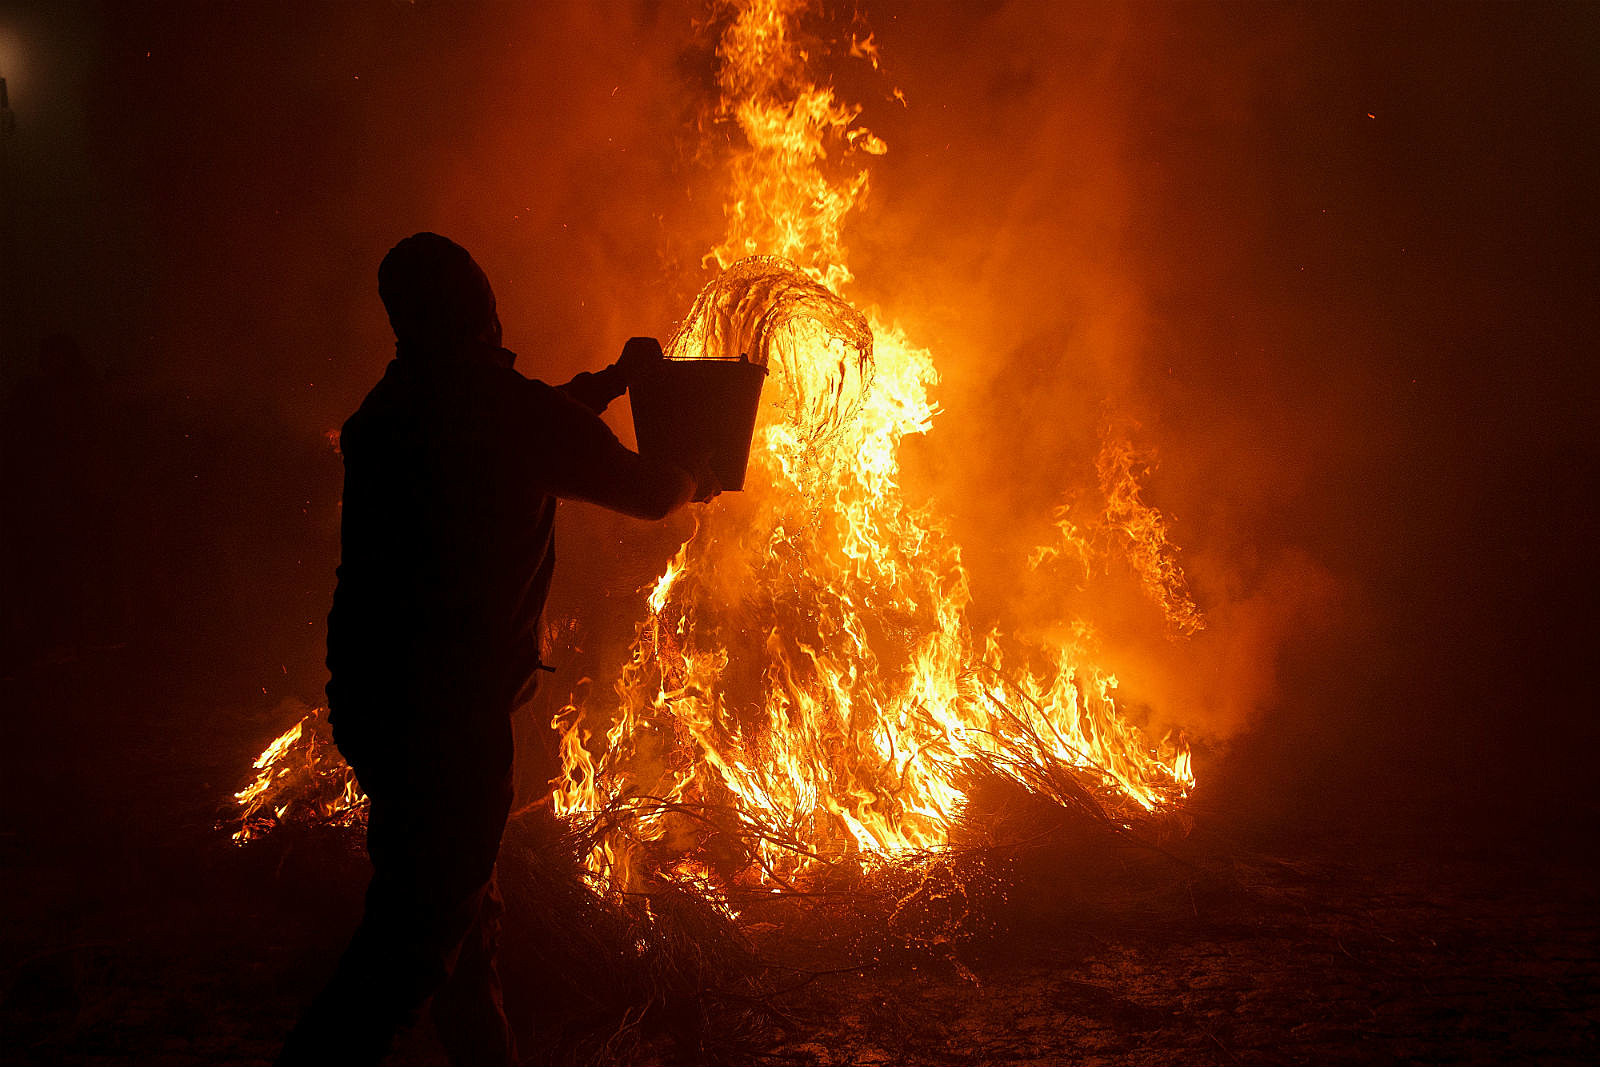 Fire_ Pablo Blazquez Dominguez/Getty